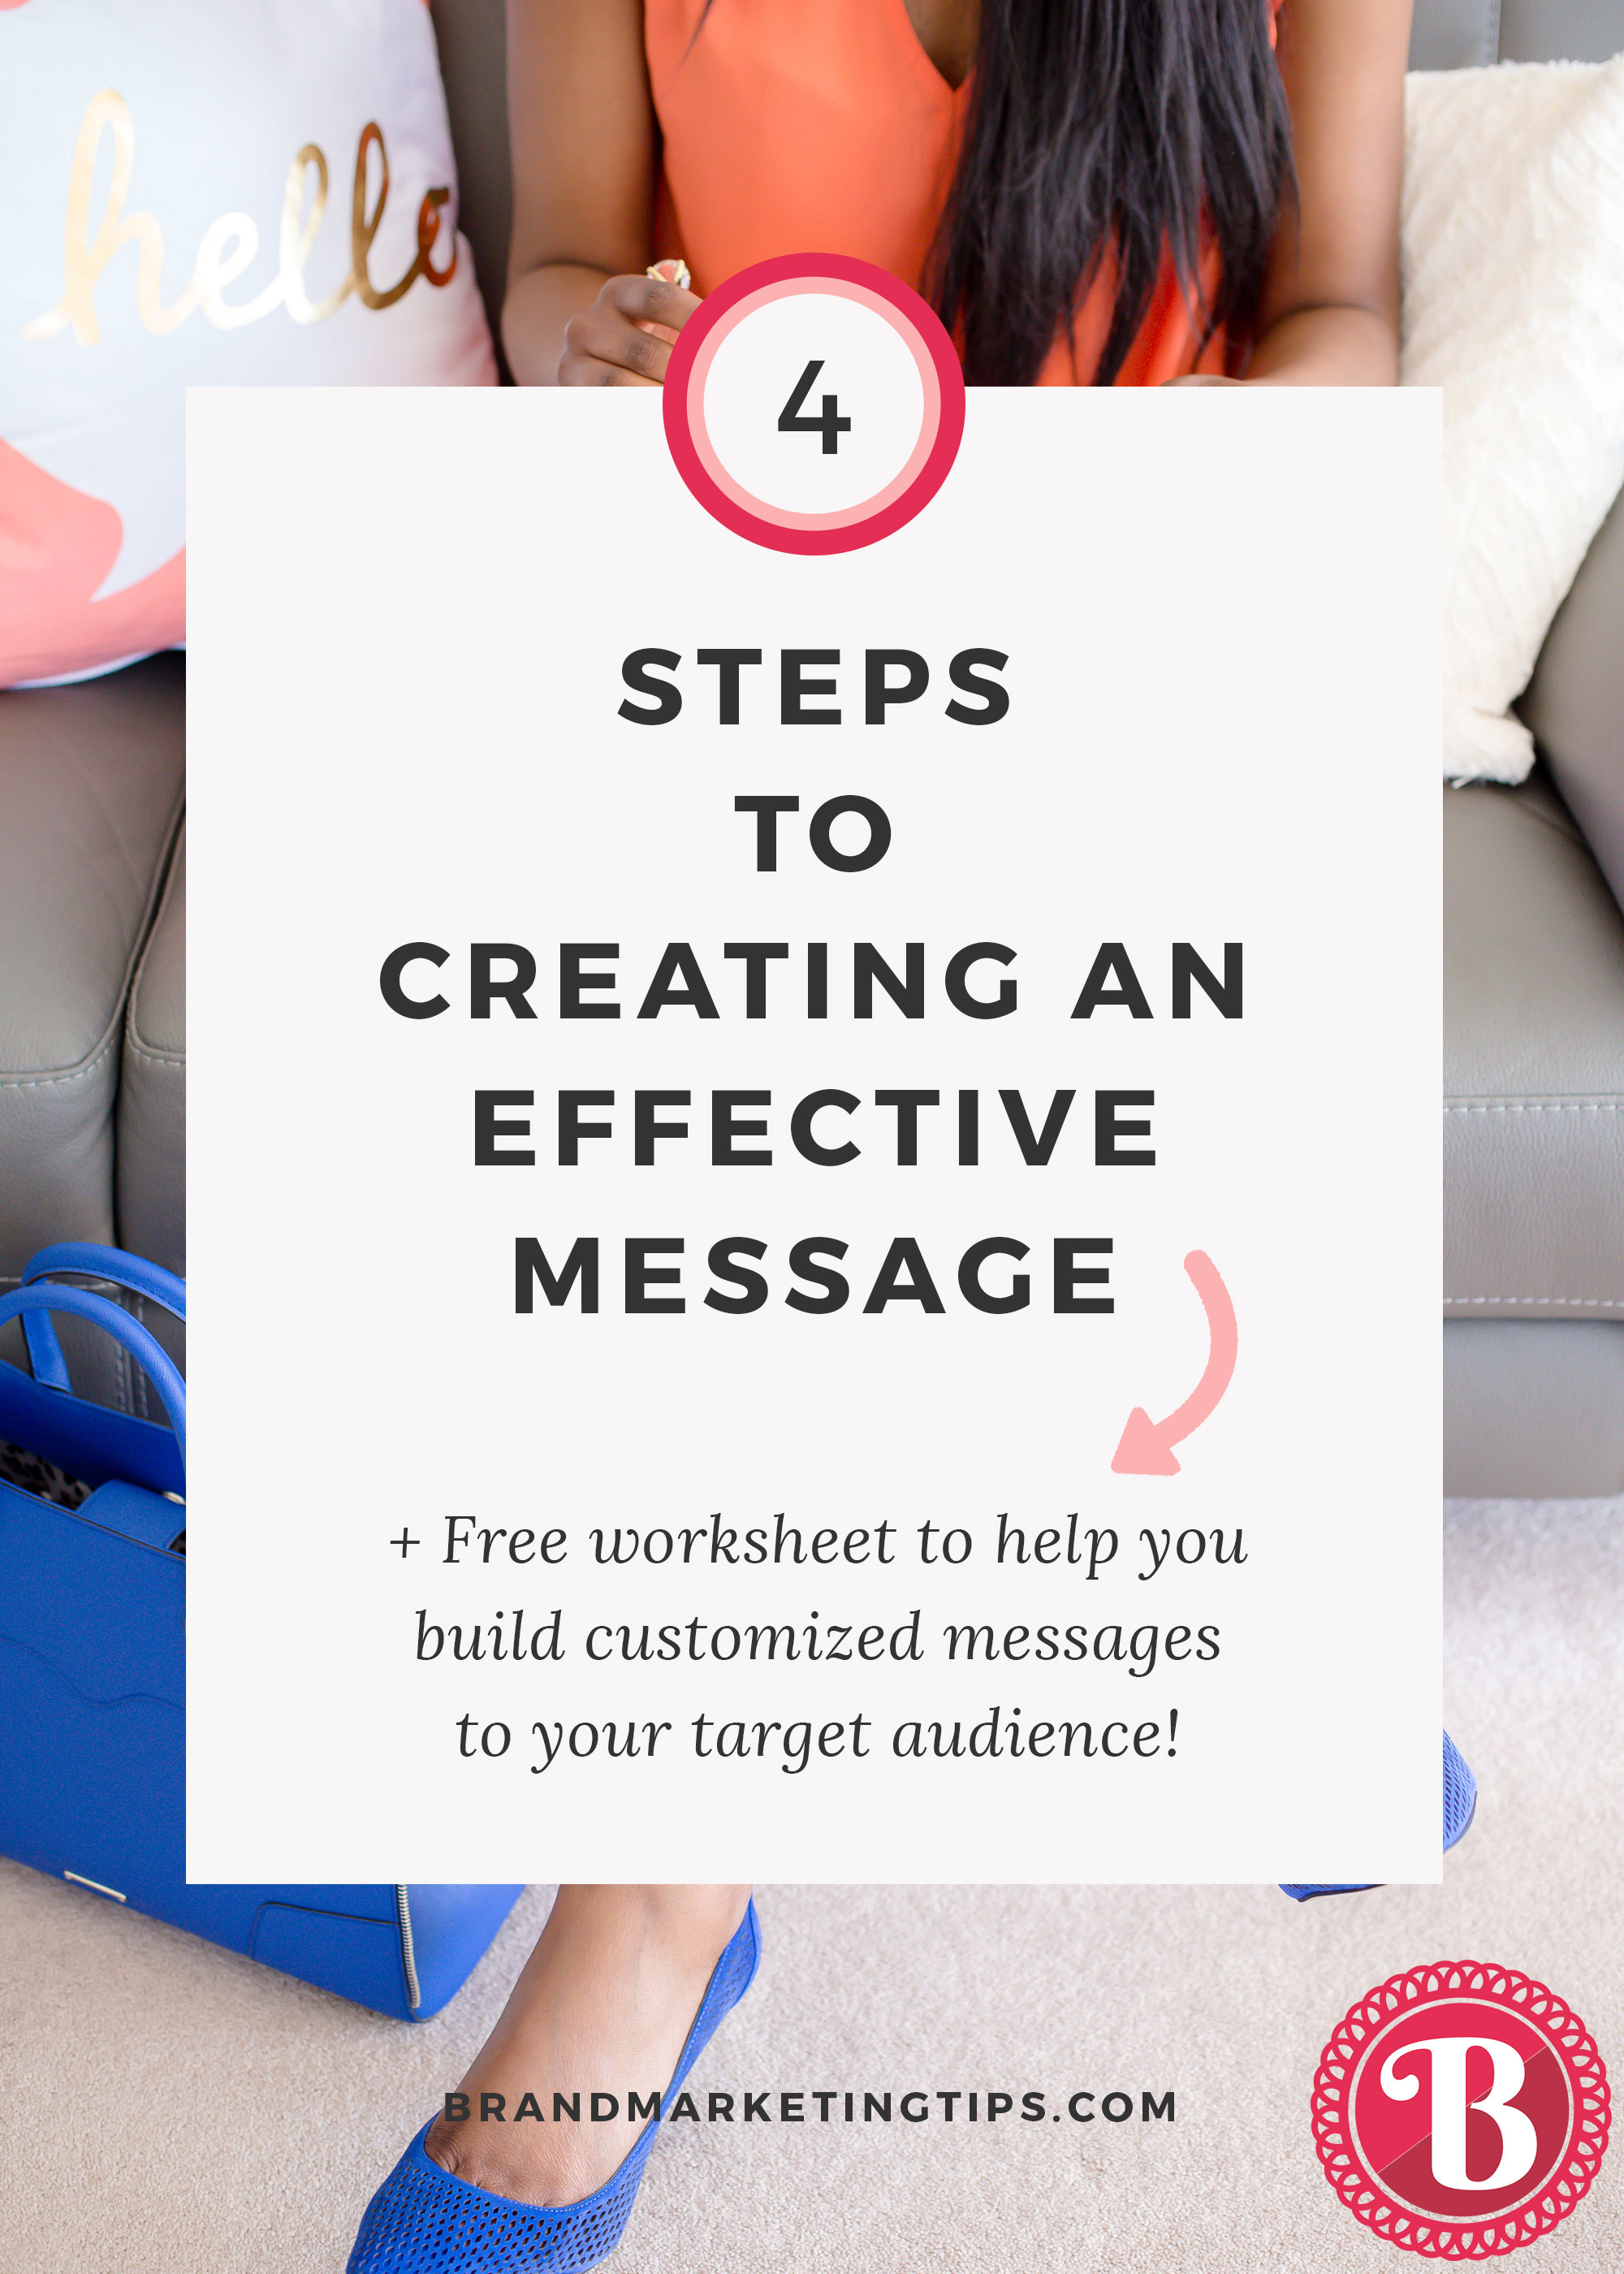 4 Steps To Creating An Effective Message